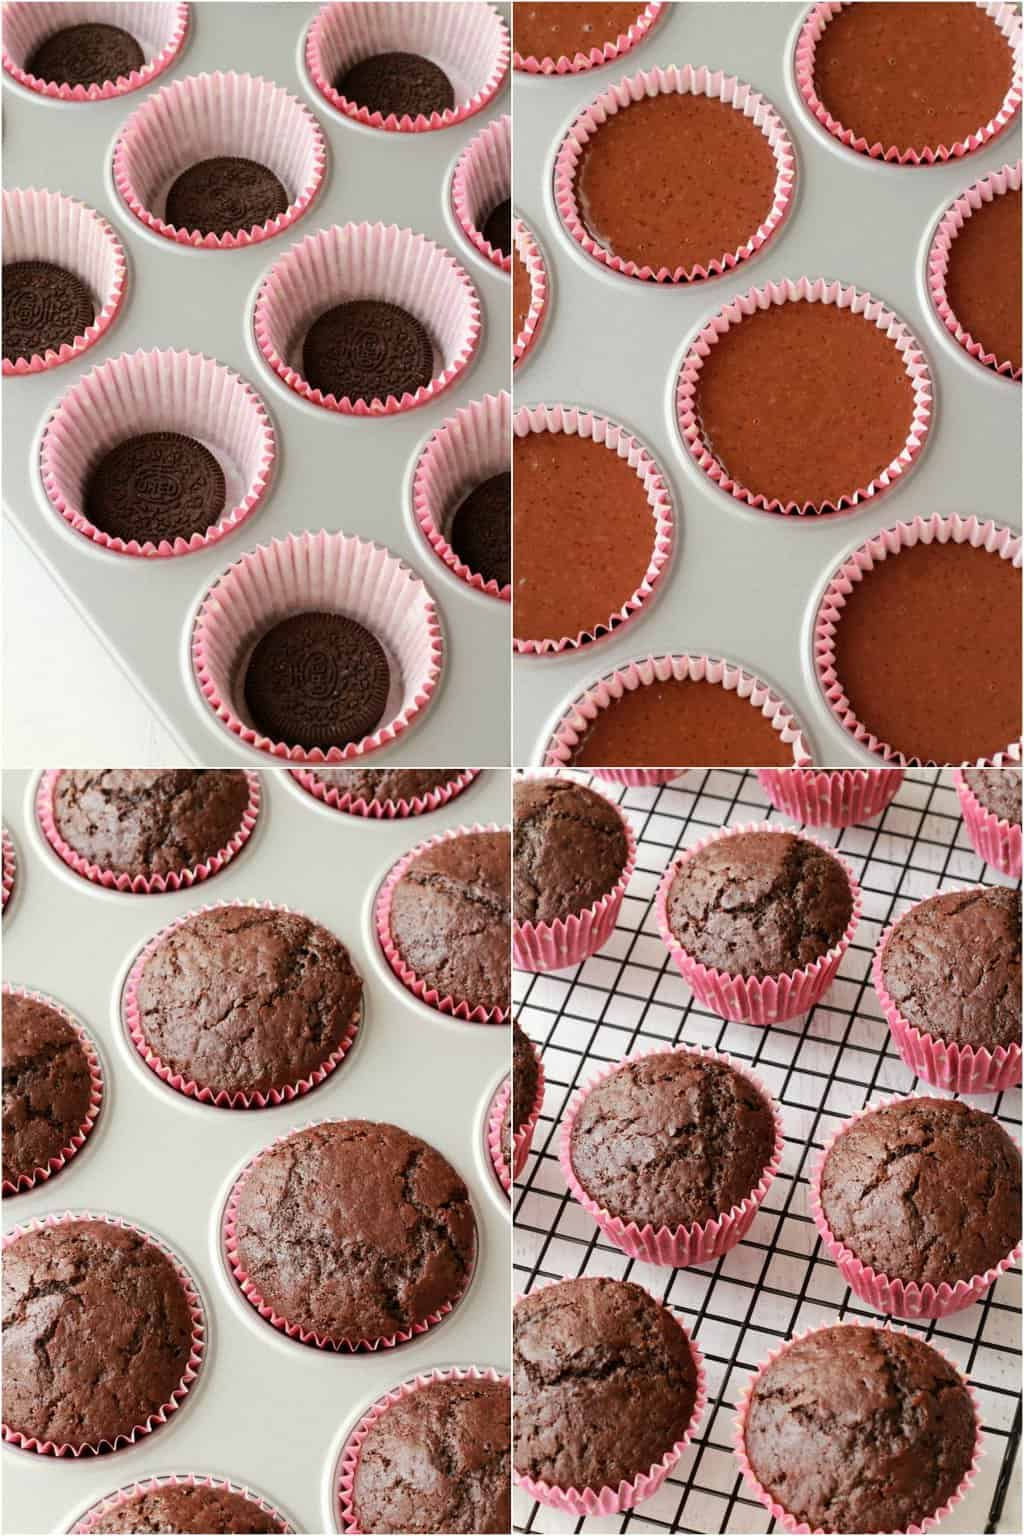 Step by step process photo collage of making vegan oreo cupcakes.